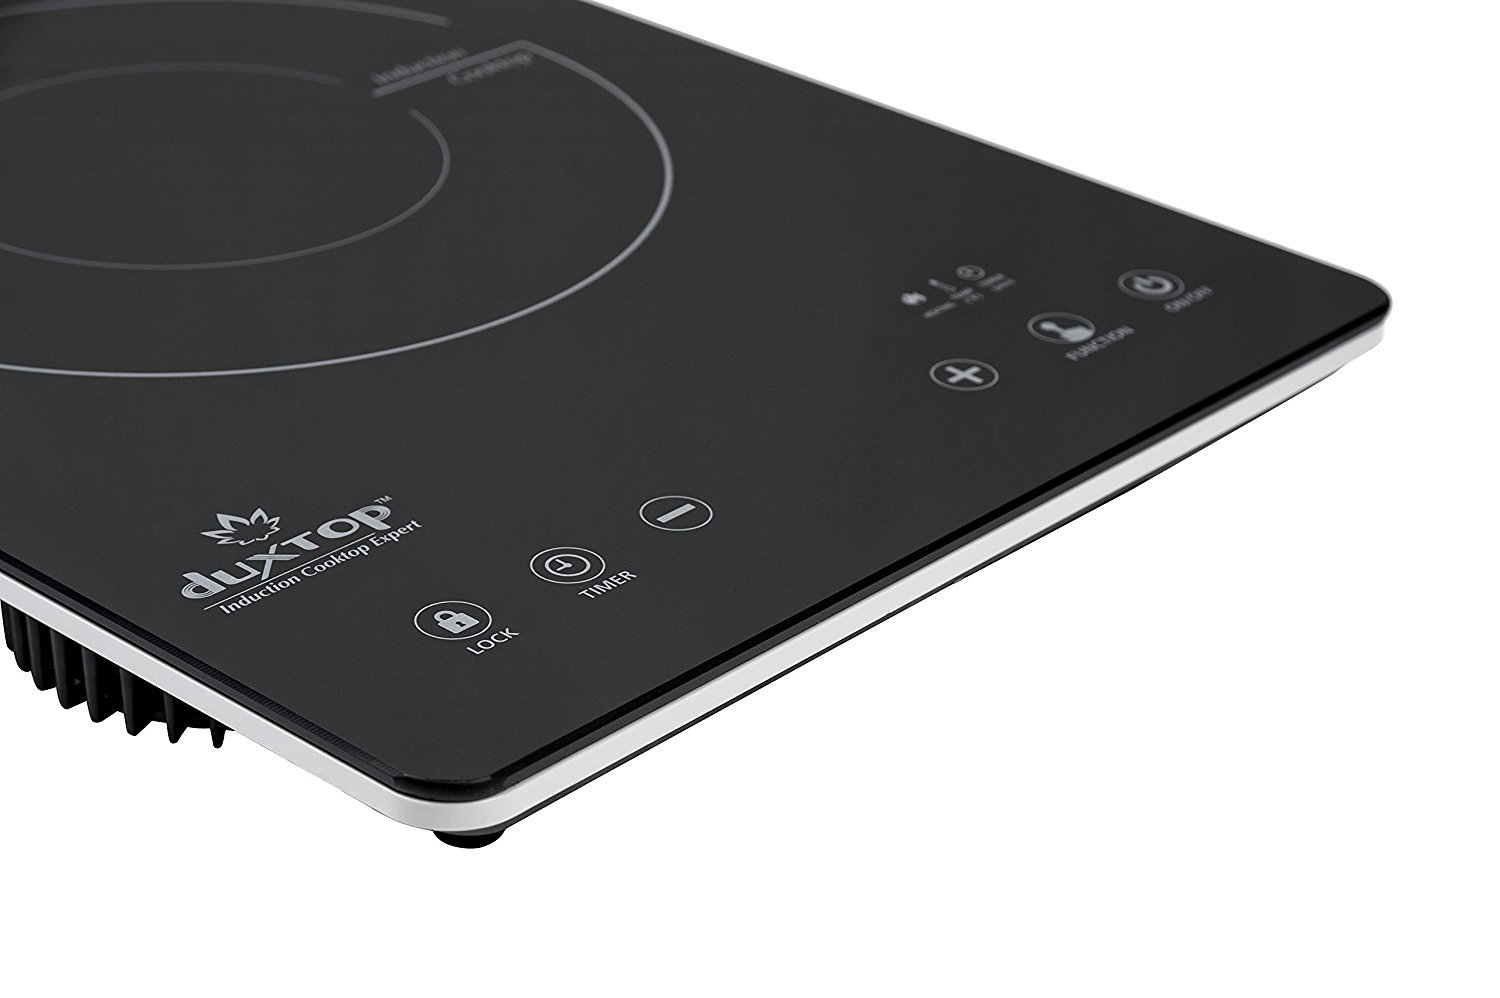 duxtop induction cooktop 9300ST control panel